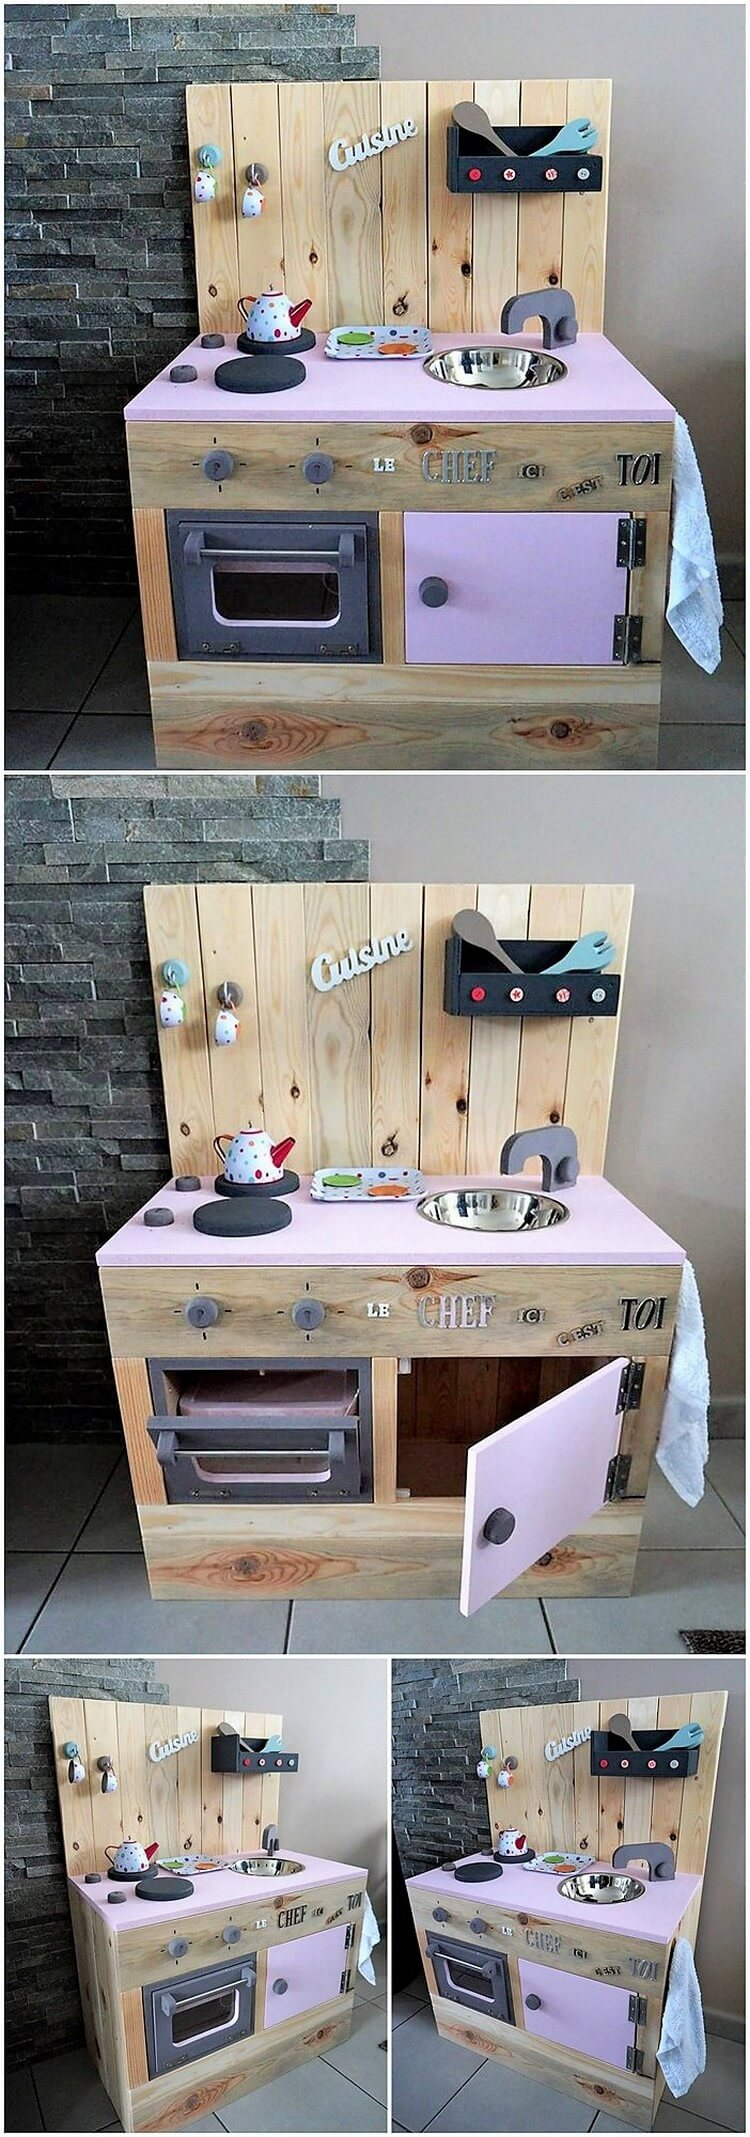 Pallet Kitchen Creation for Kids